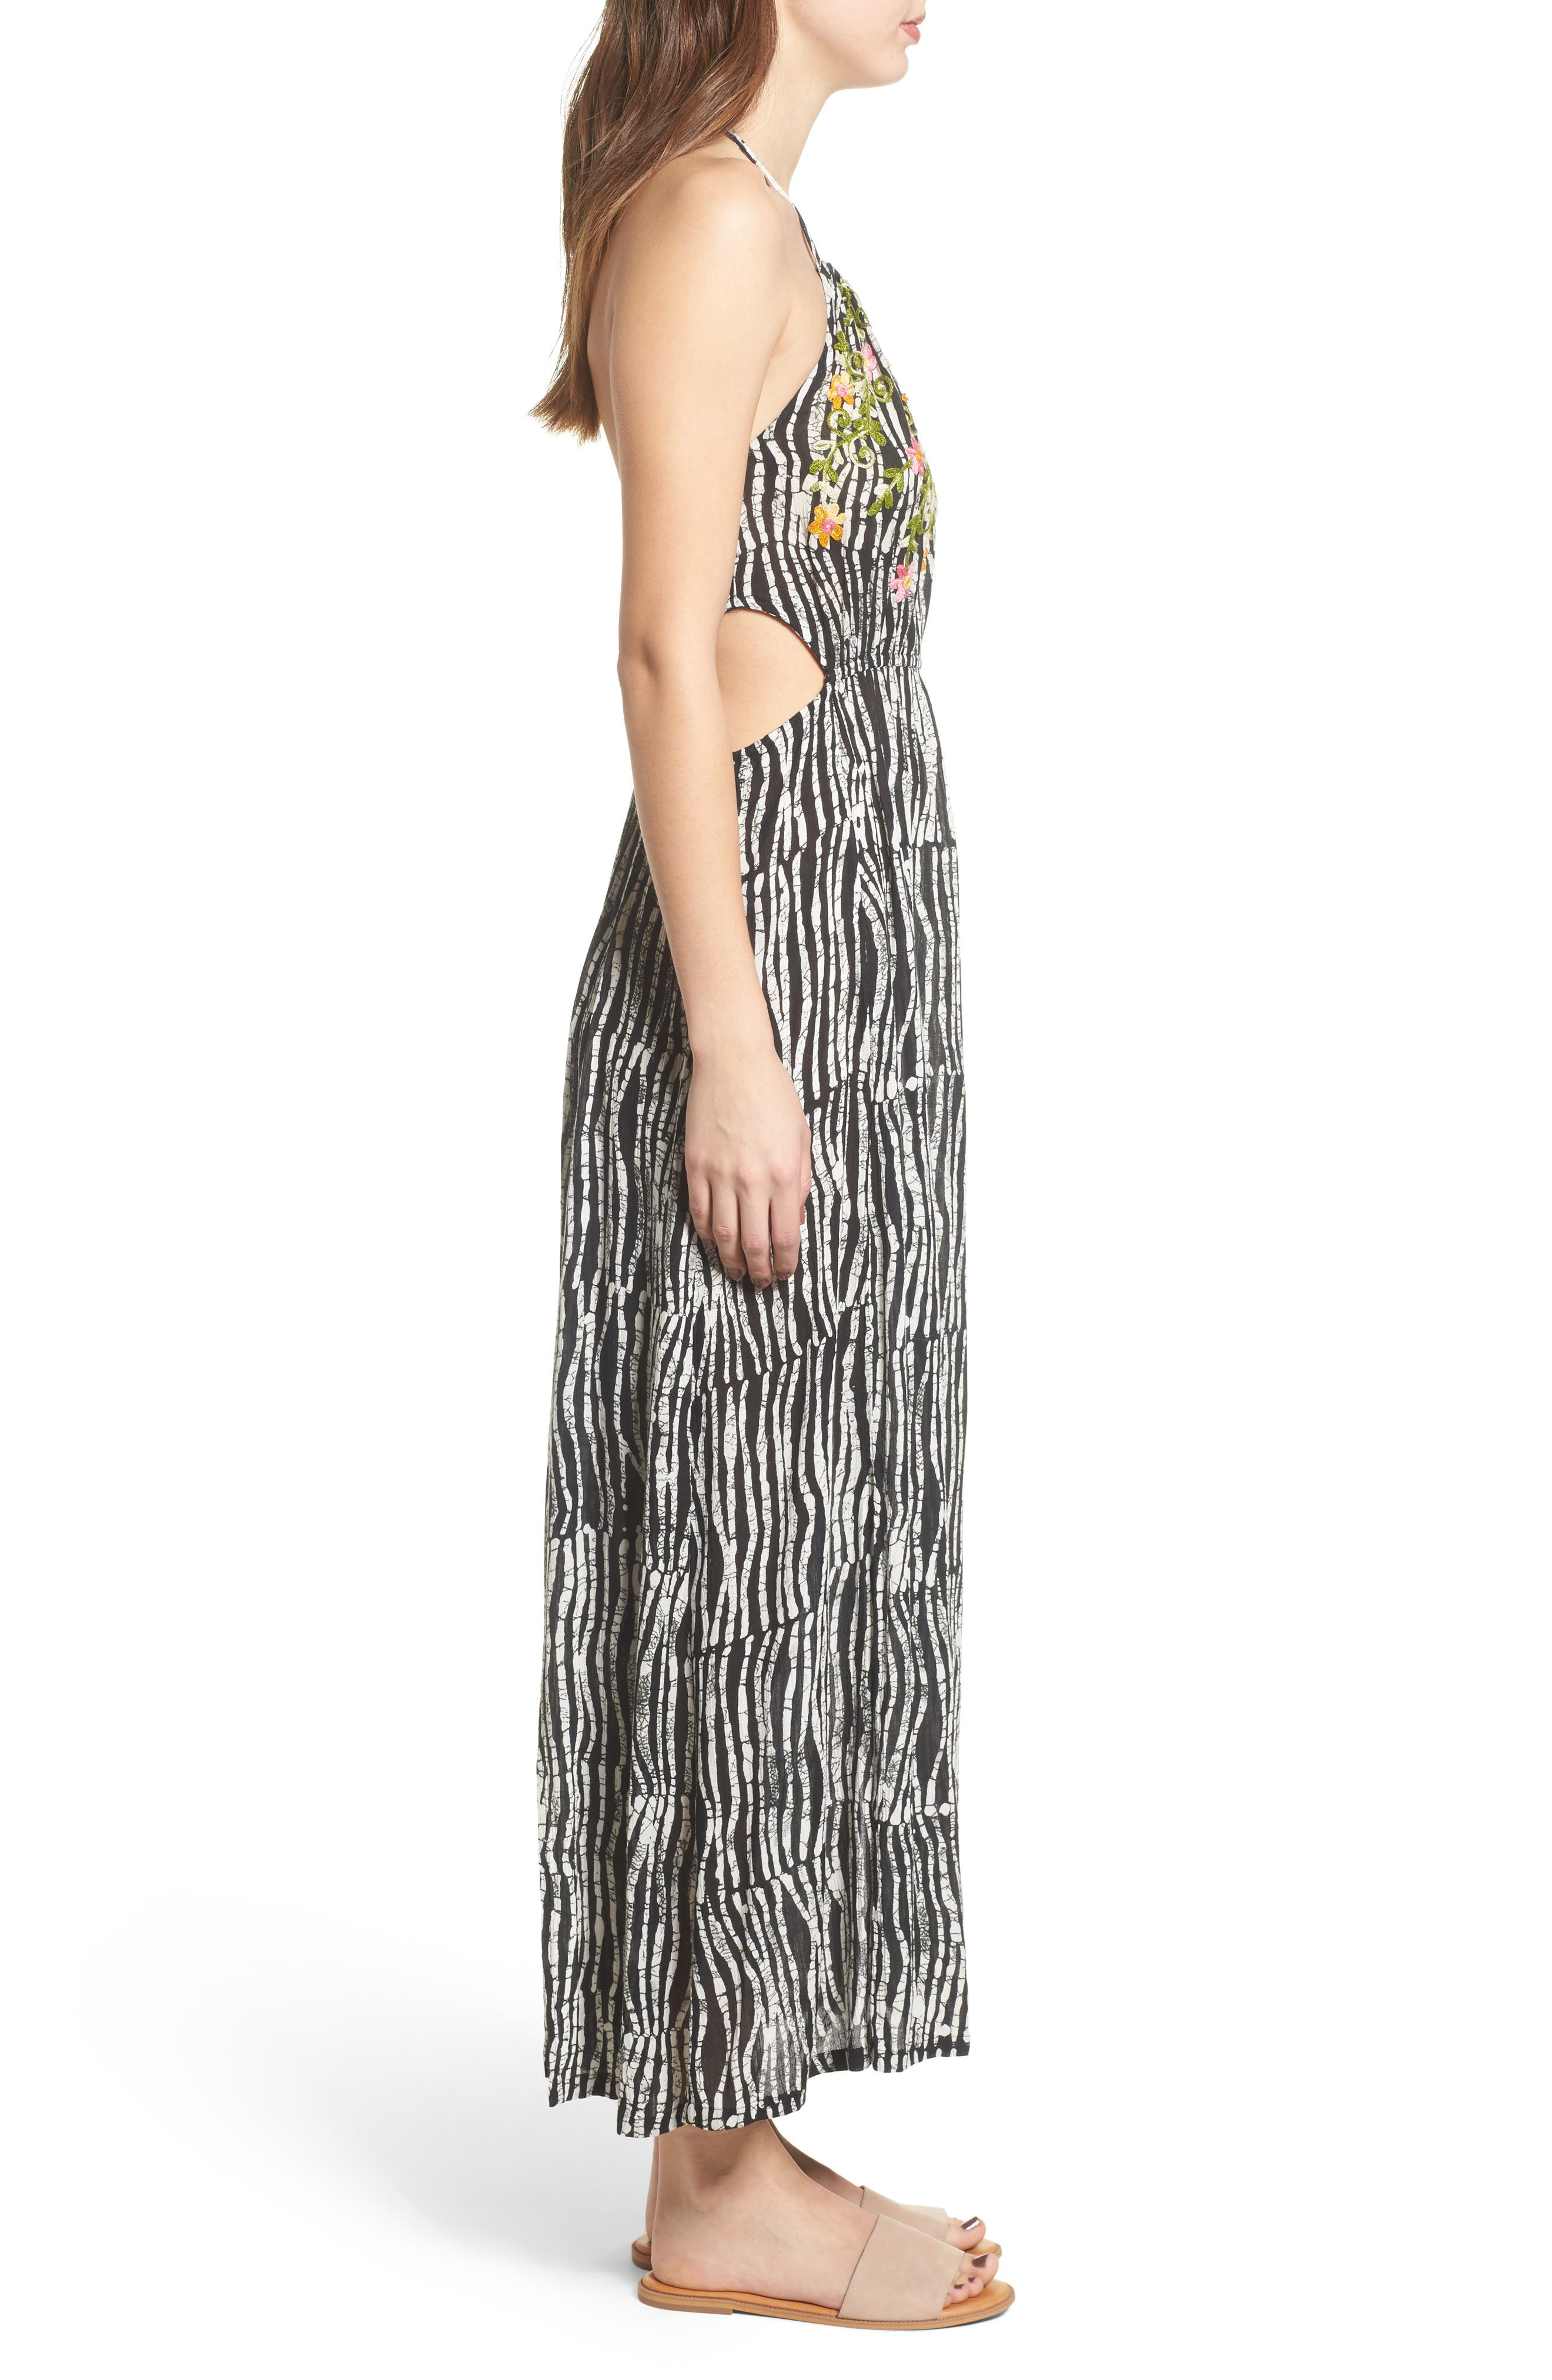 Before Dawn Embroidered Maxi Dress,                             Alternate thumbnail 4, color,                             Black/ White